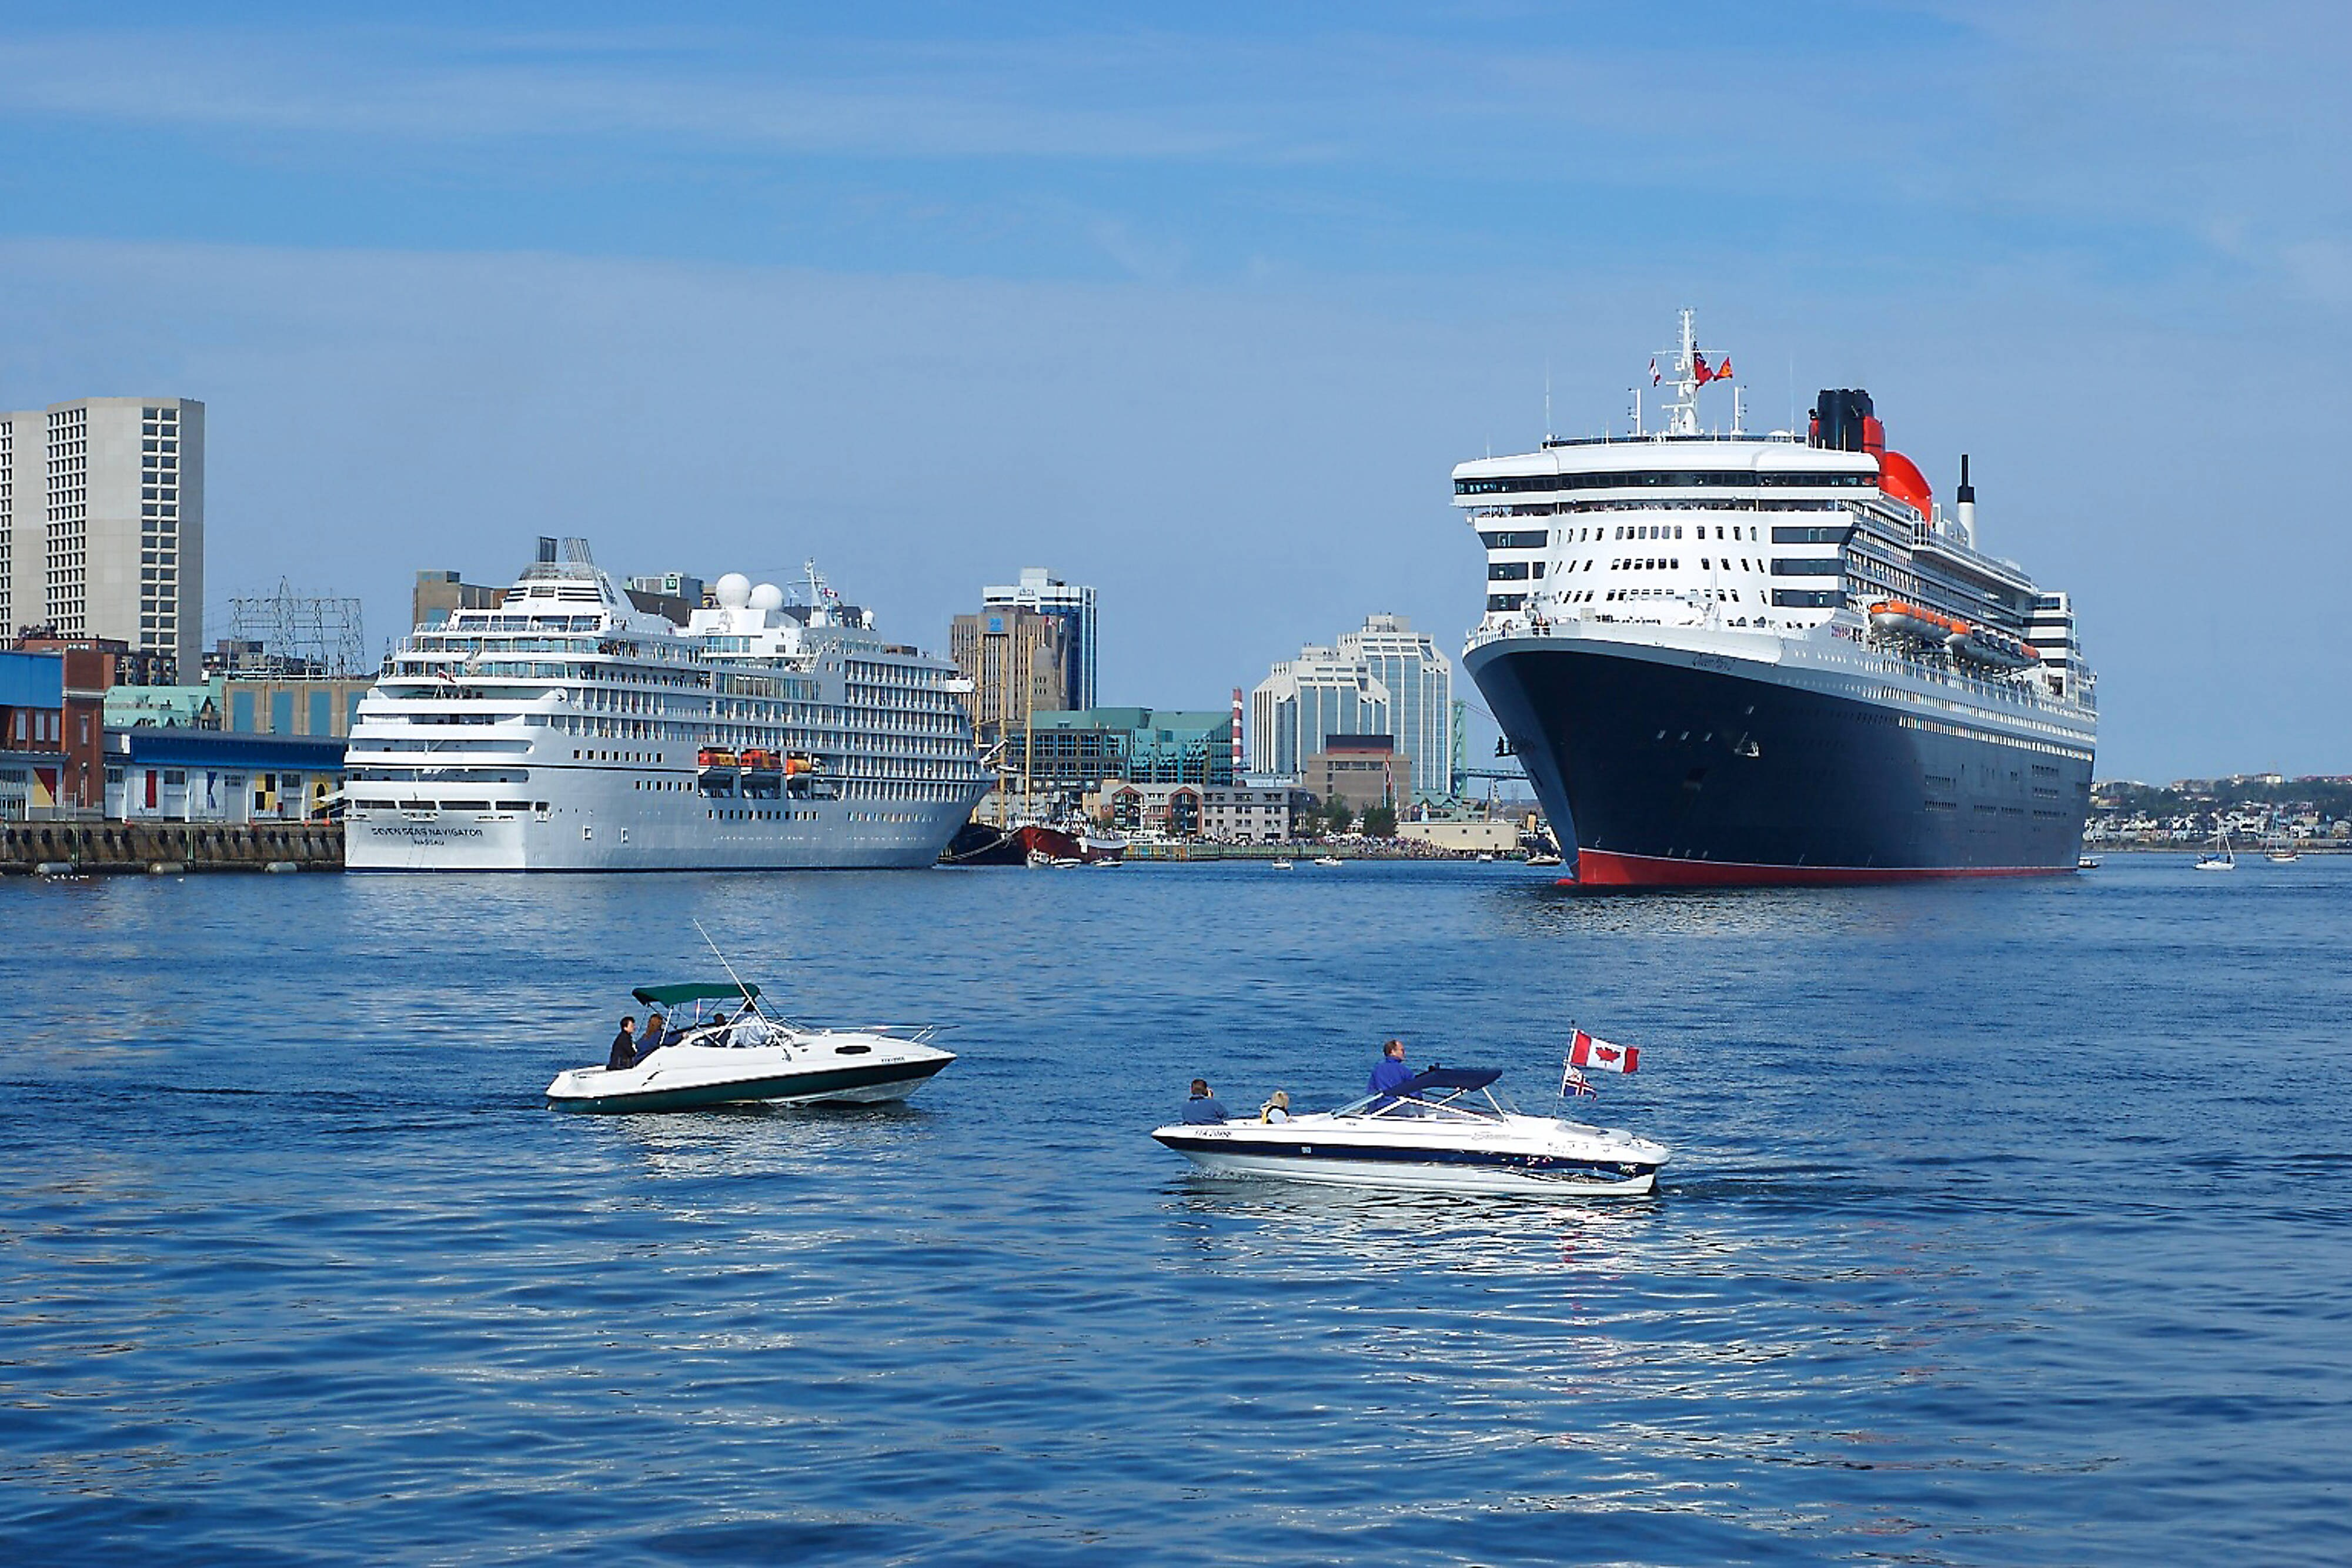 Cruise Ships in the Halifax Harbour